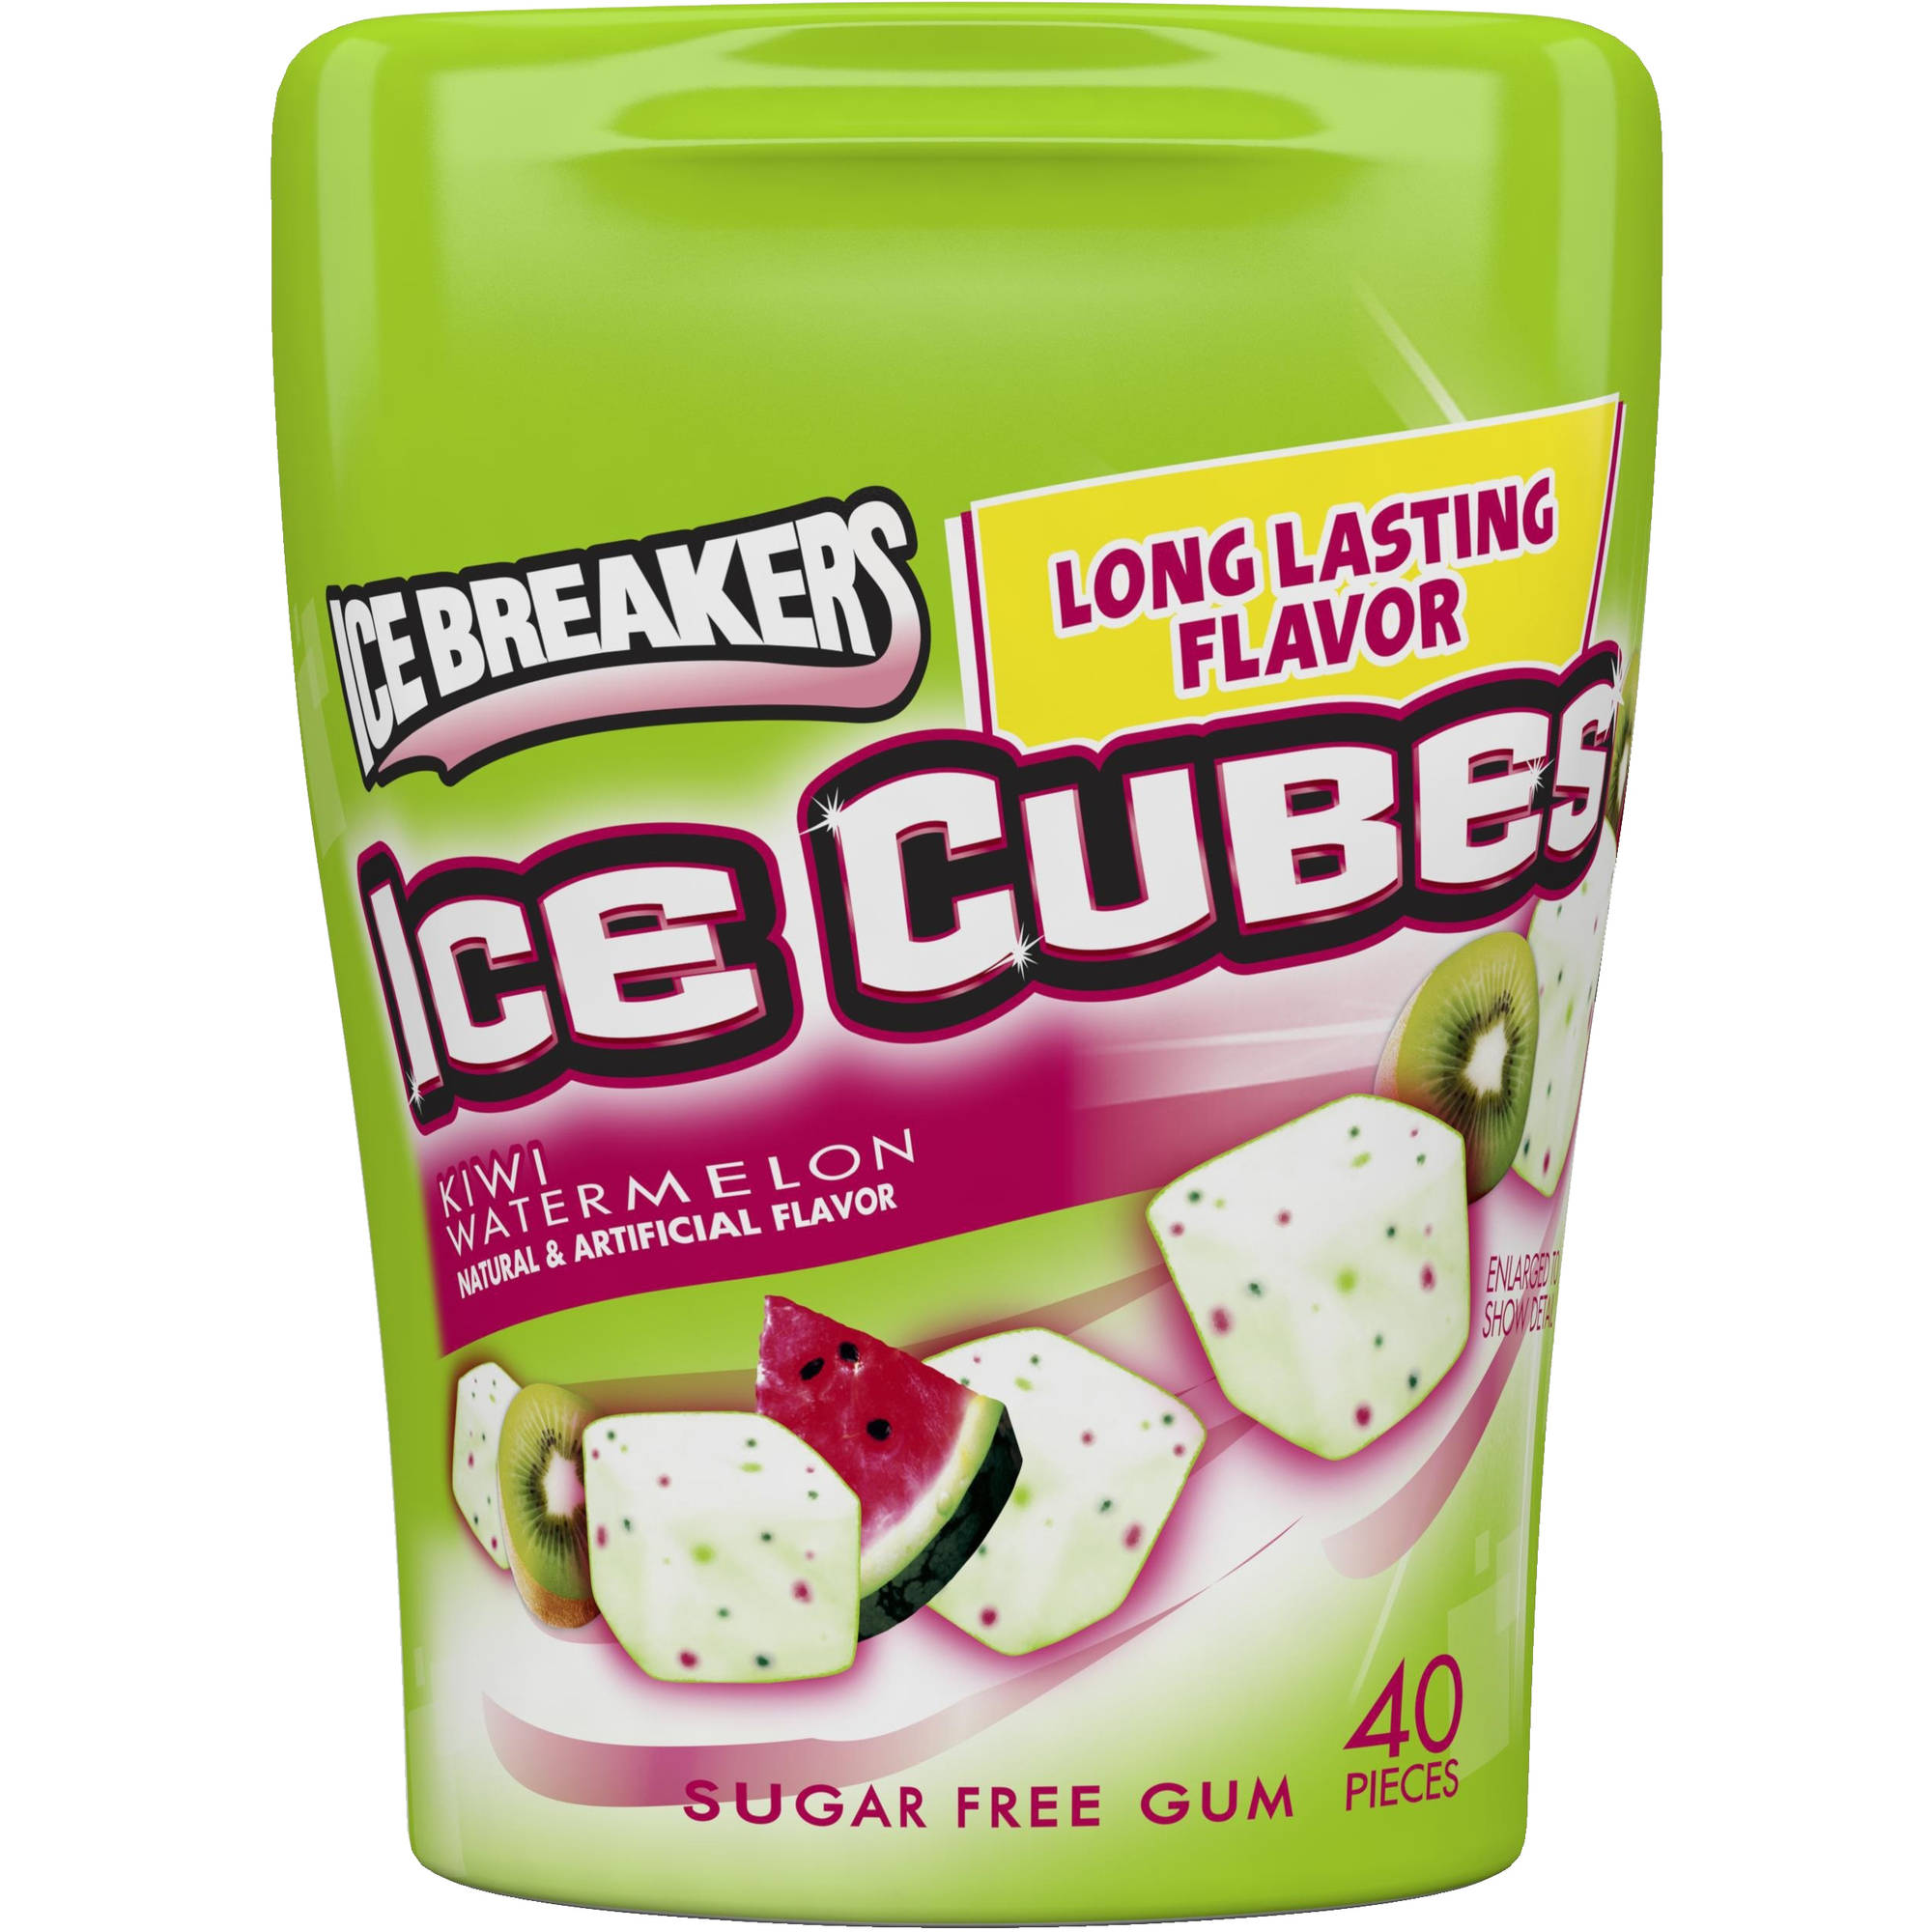 Ice Breakers Ice Cubes Sugar Free Kiwi Watermelon Gum, 40 count